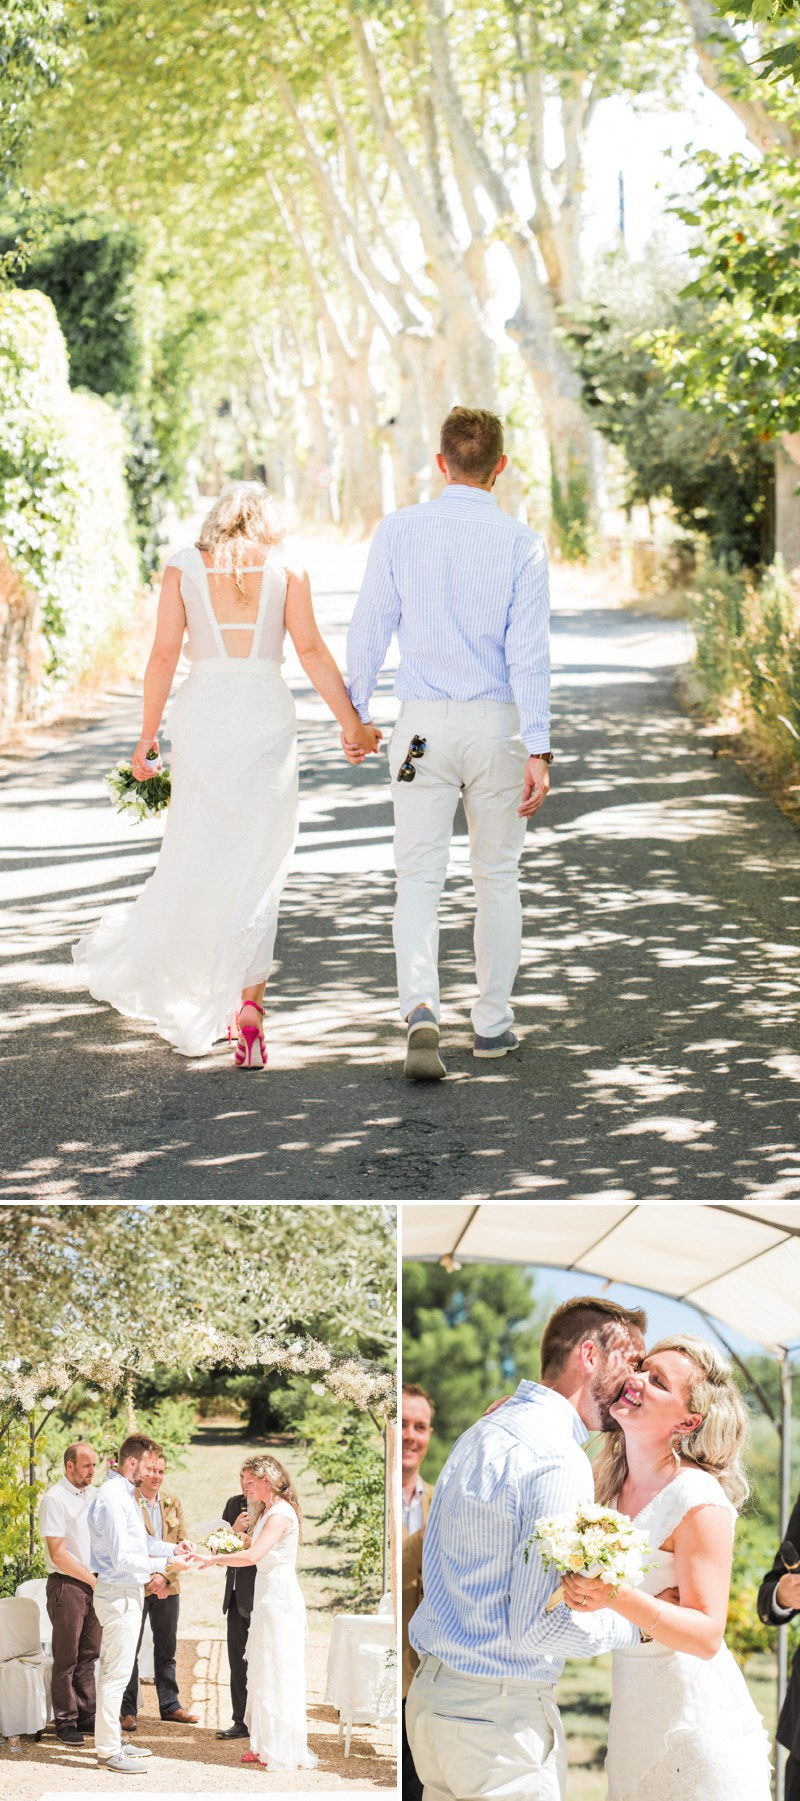 A Beautiful Destination Wedding at Chateau du Puits es Pratx in France With A Handmade Bohemian Wedding Dress And White Colour Scheme By M&J Photography._0004